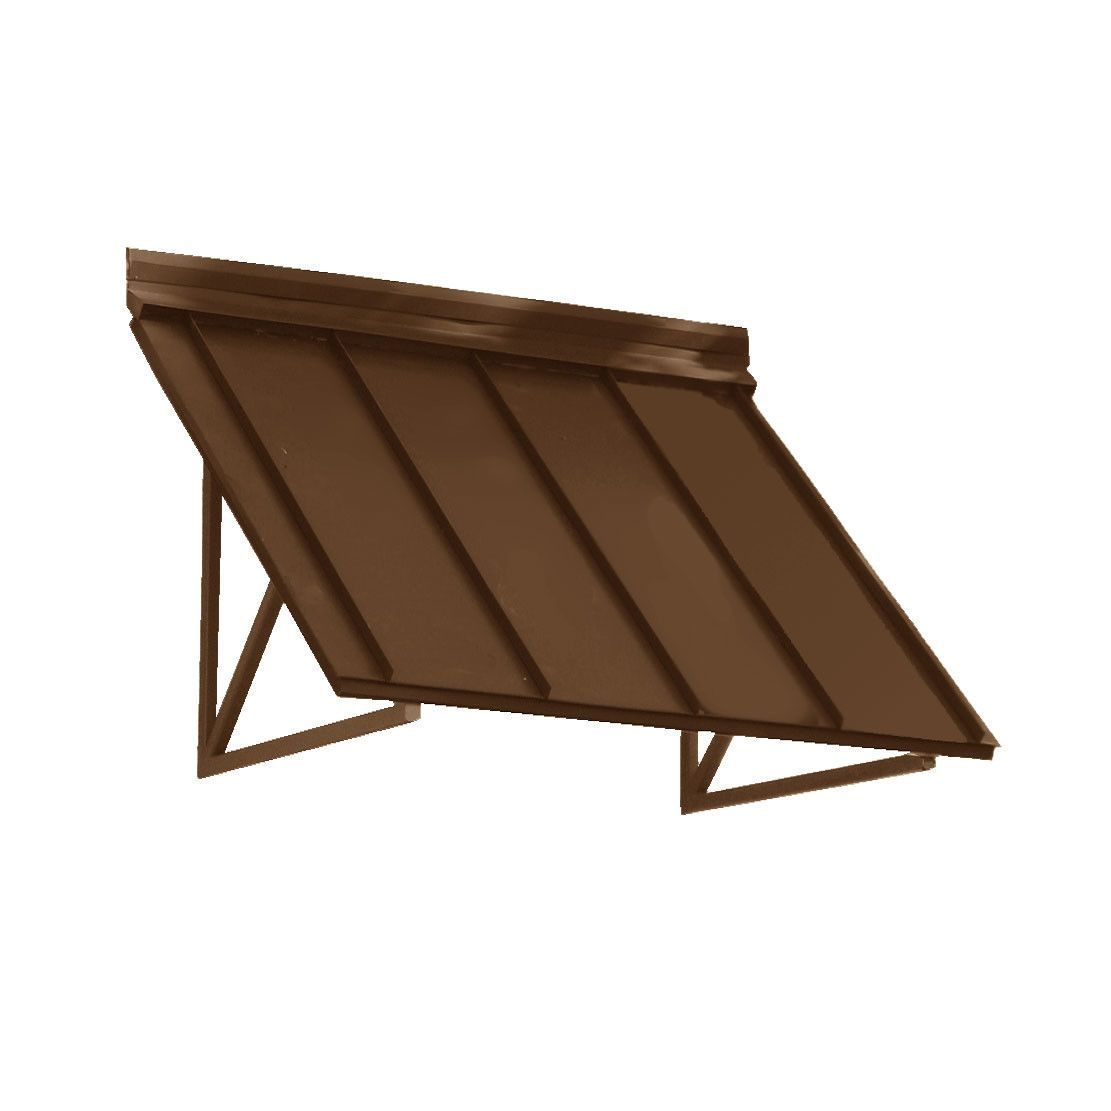 Awntech Houstonian Standing Seam Slope Awning Metal Awning Door Awnings Standing Seam